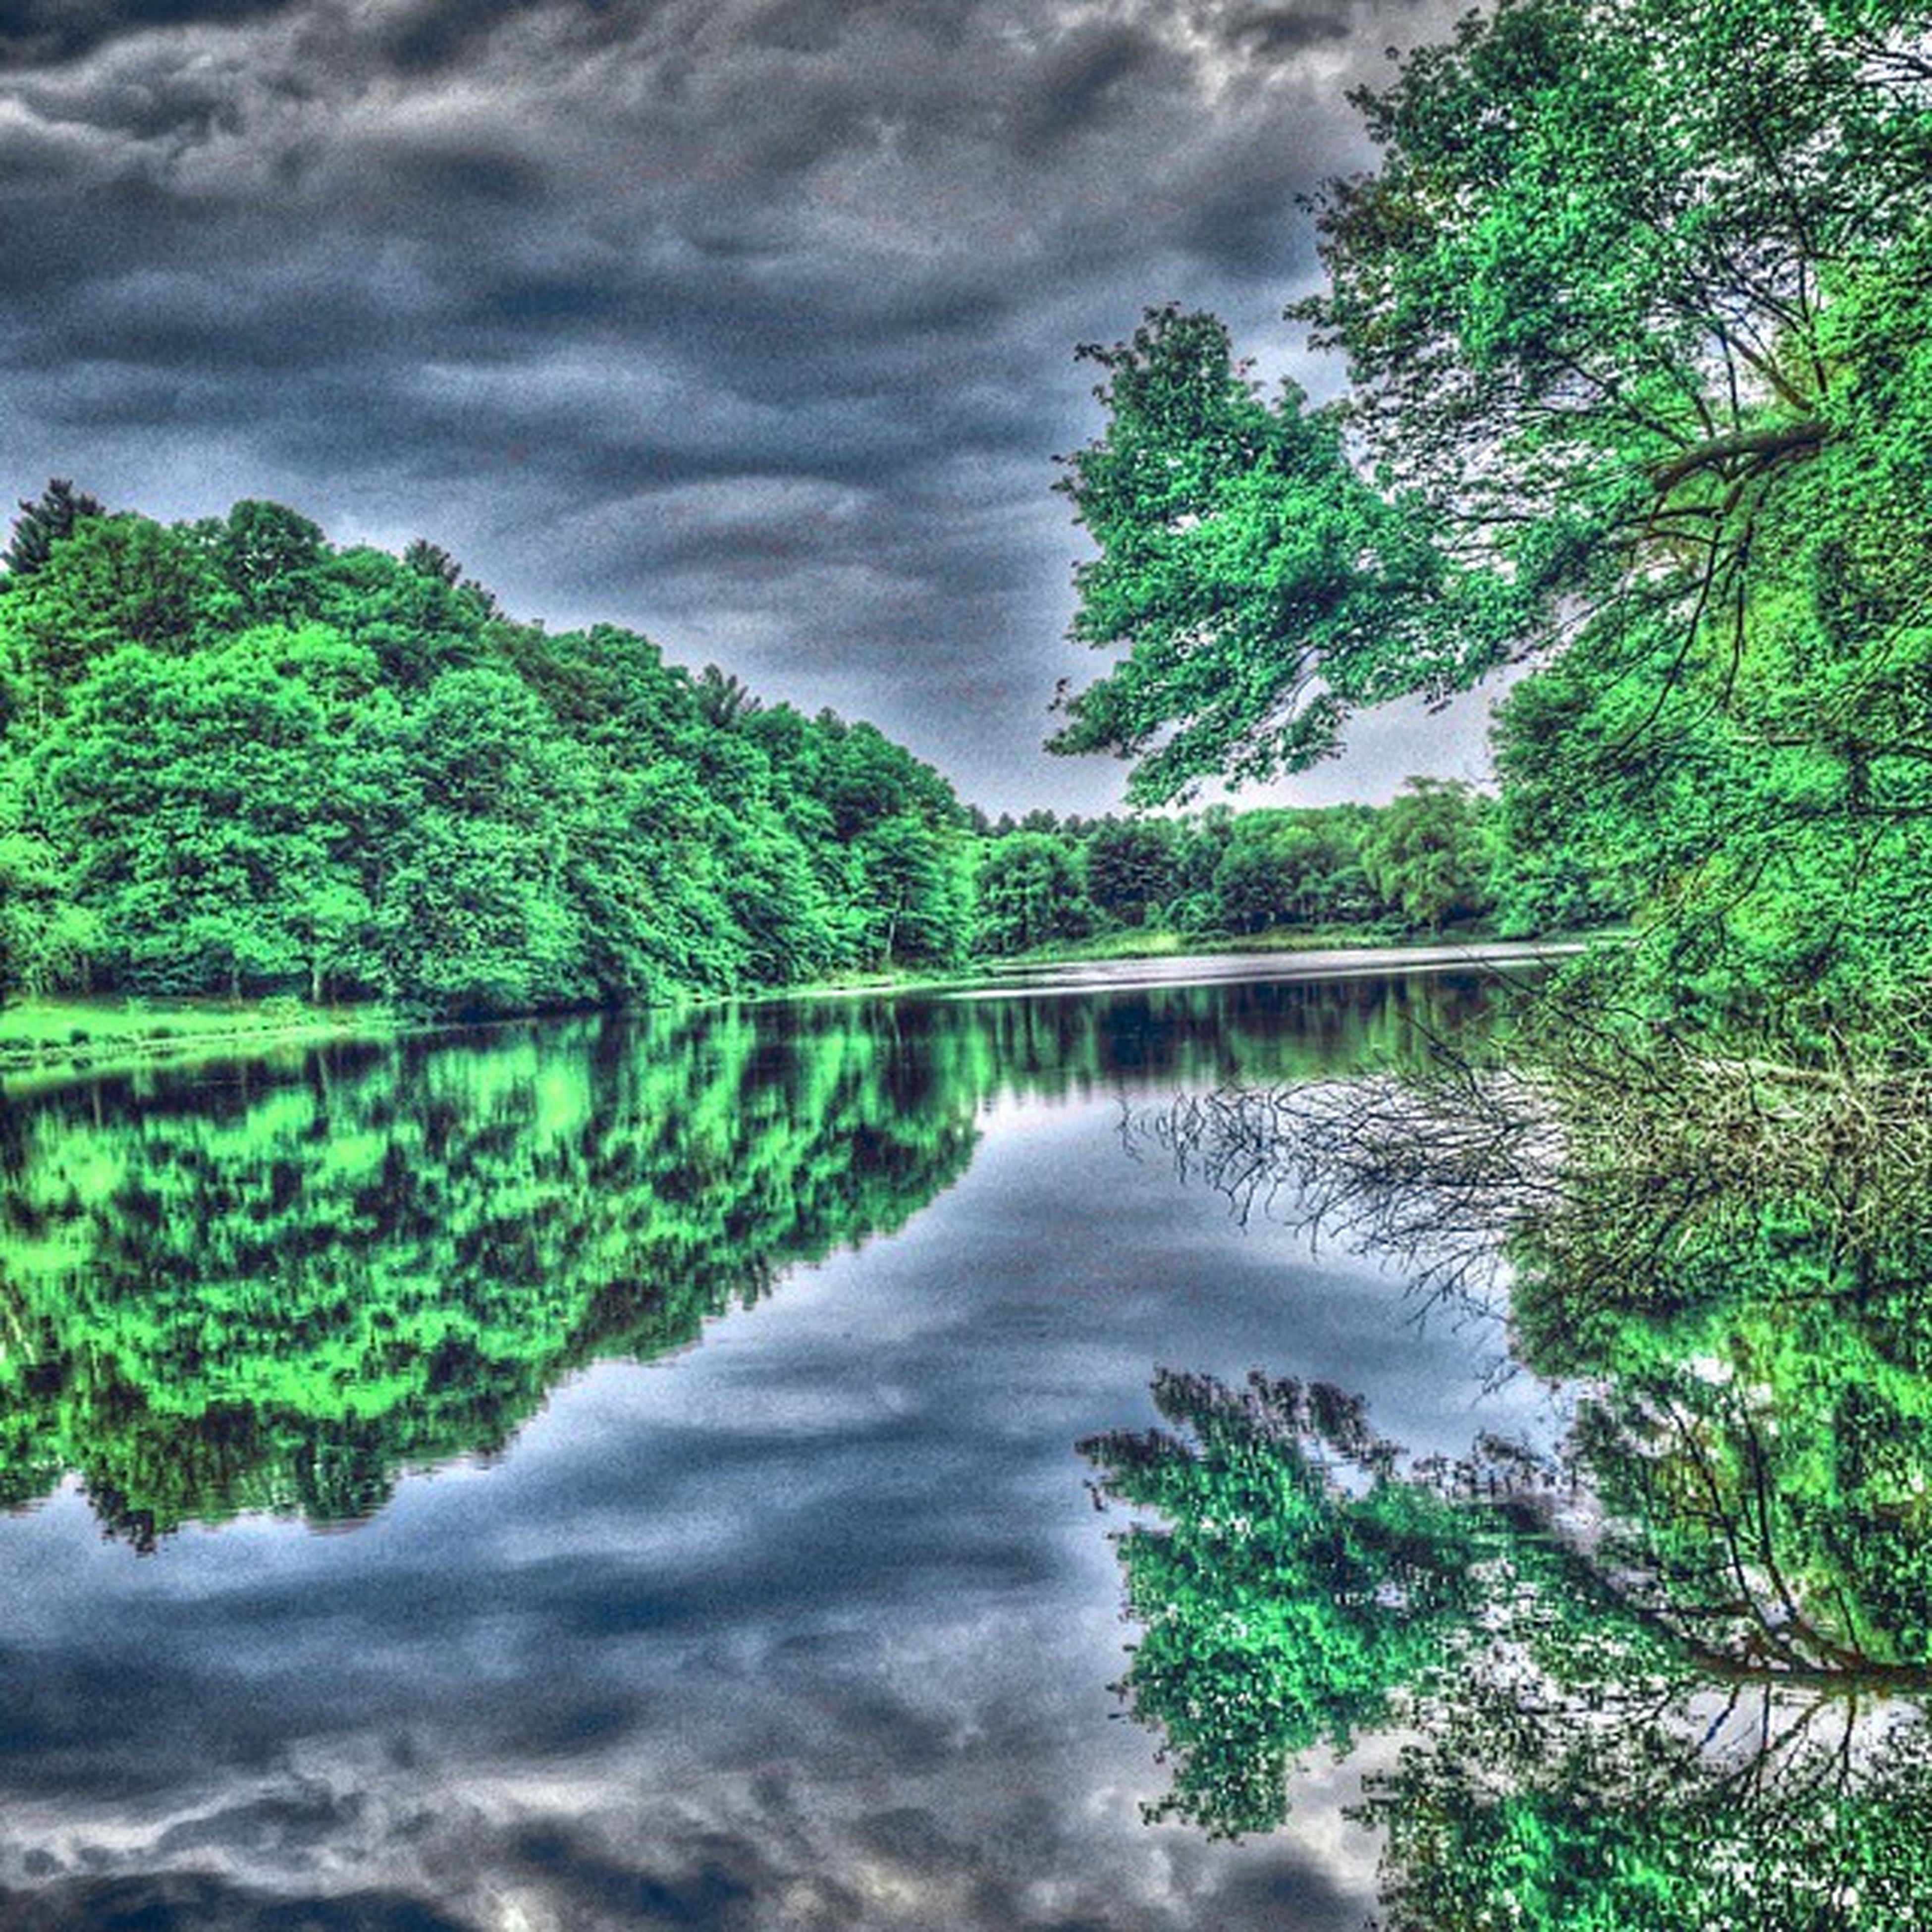 tree, tranquility, tranquil scene, reflection, sky, scenics, beauty in nature, water, cloud - sky, nature, lake, cloudy, green color, growth, idyllic, forest, waterfront, cloud, standing water, non-urban scene